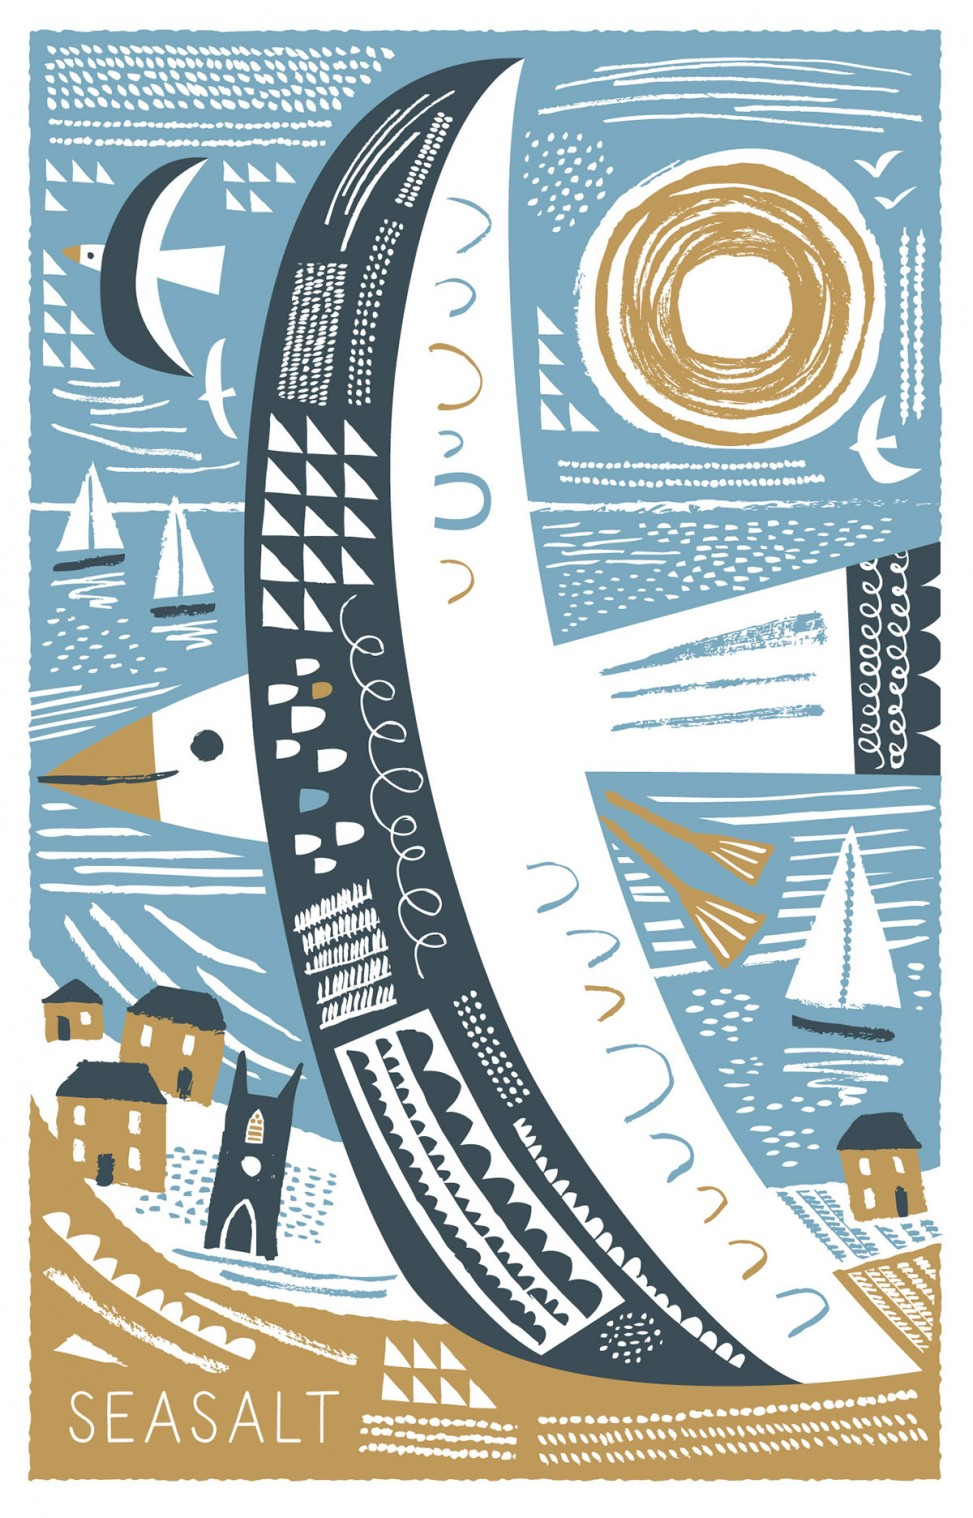 Gliding seagull illustrated tea towel print by Matt Johnson for Seasalt Cornwall